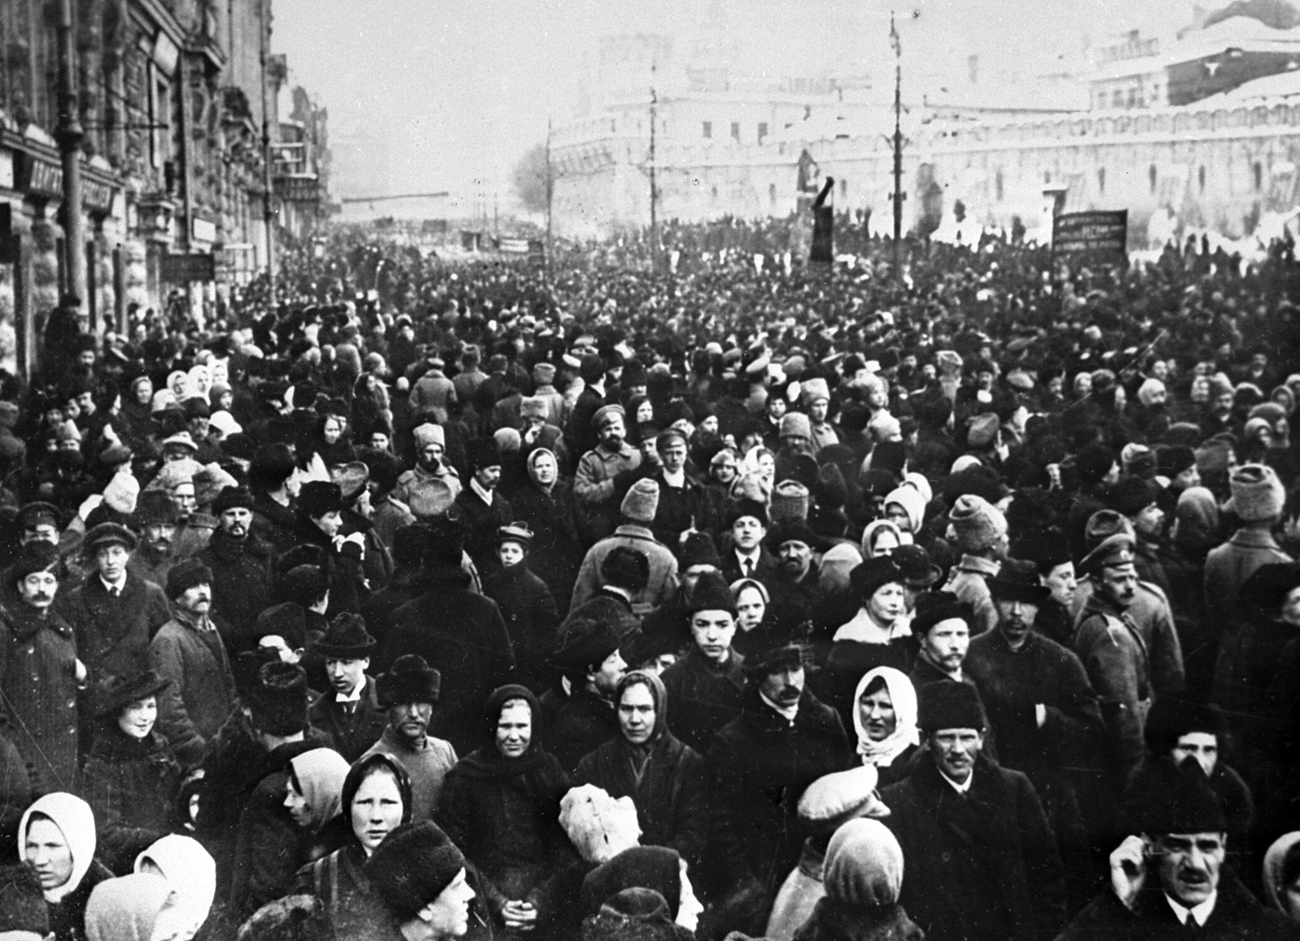 Muscovites demonstrating on Teatralnaya Square during the February bourgeois and democratic revolution. Reproduction of 1917 photo.